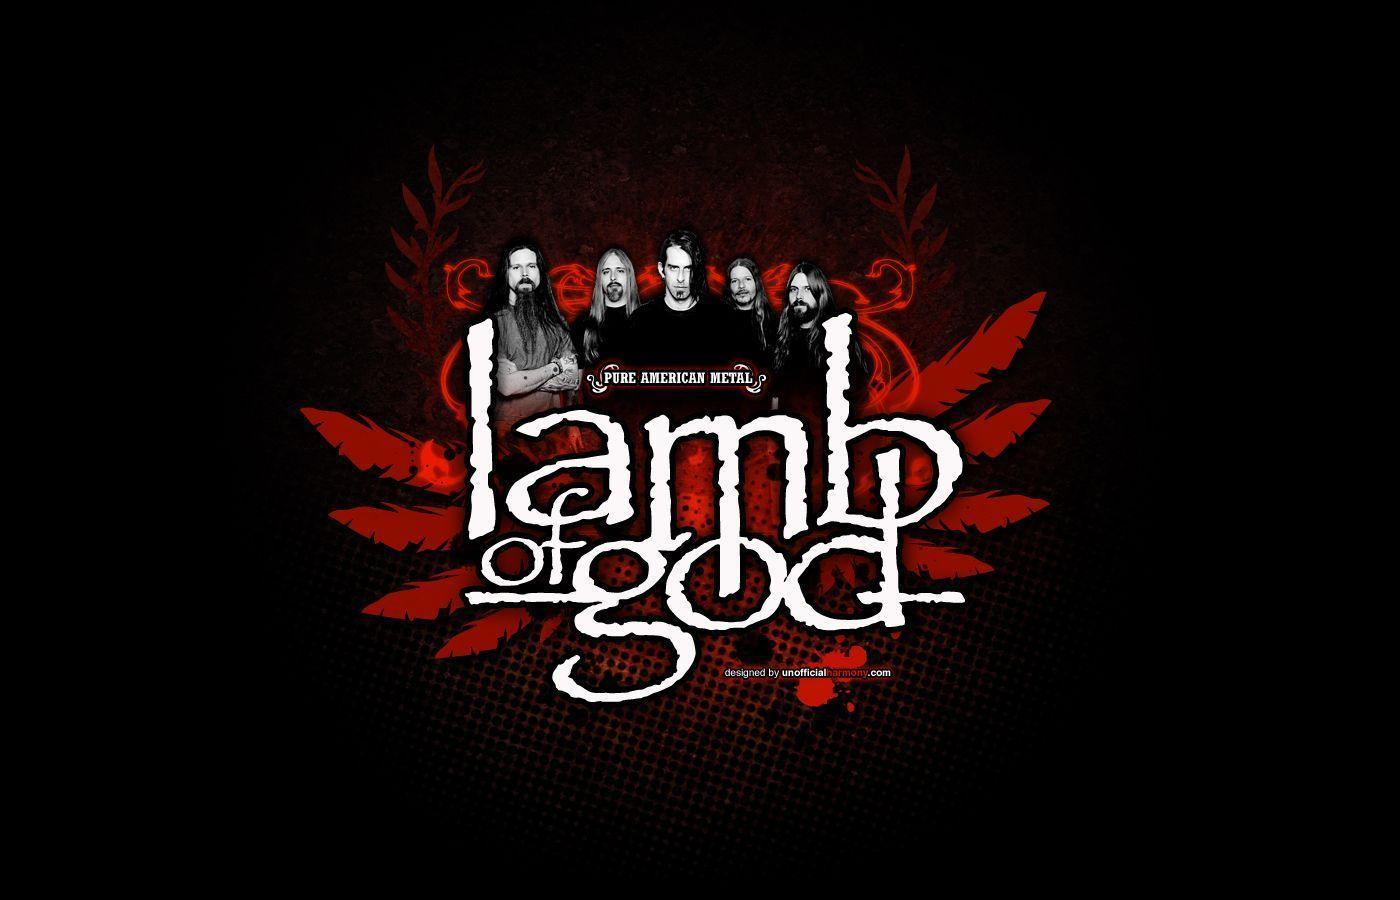 Lamb Of God Wallpaper 1400x900 by unofficialharmony on DeviantArt